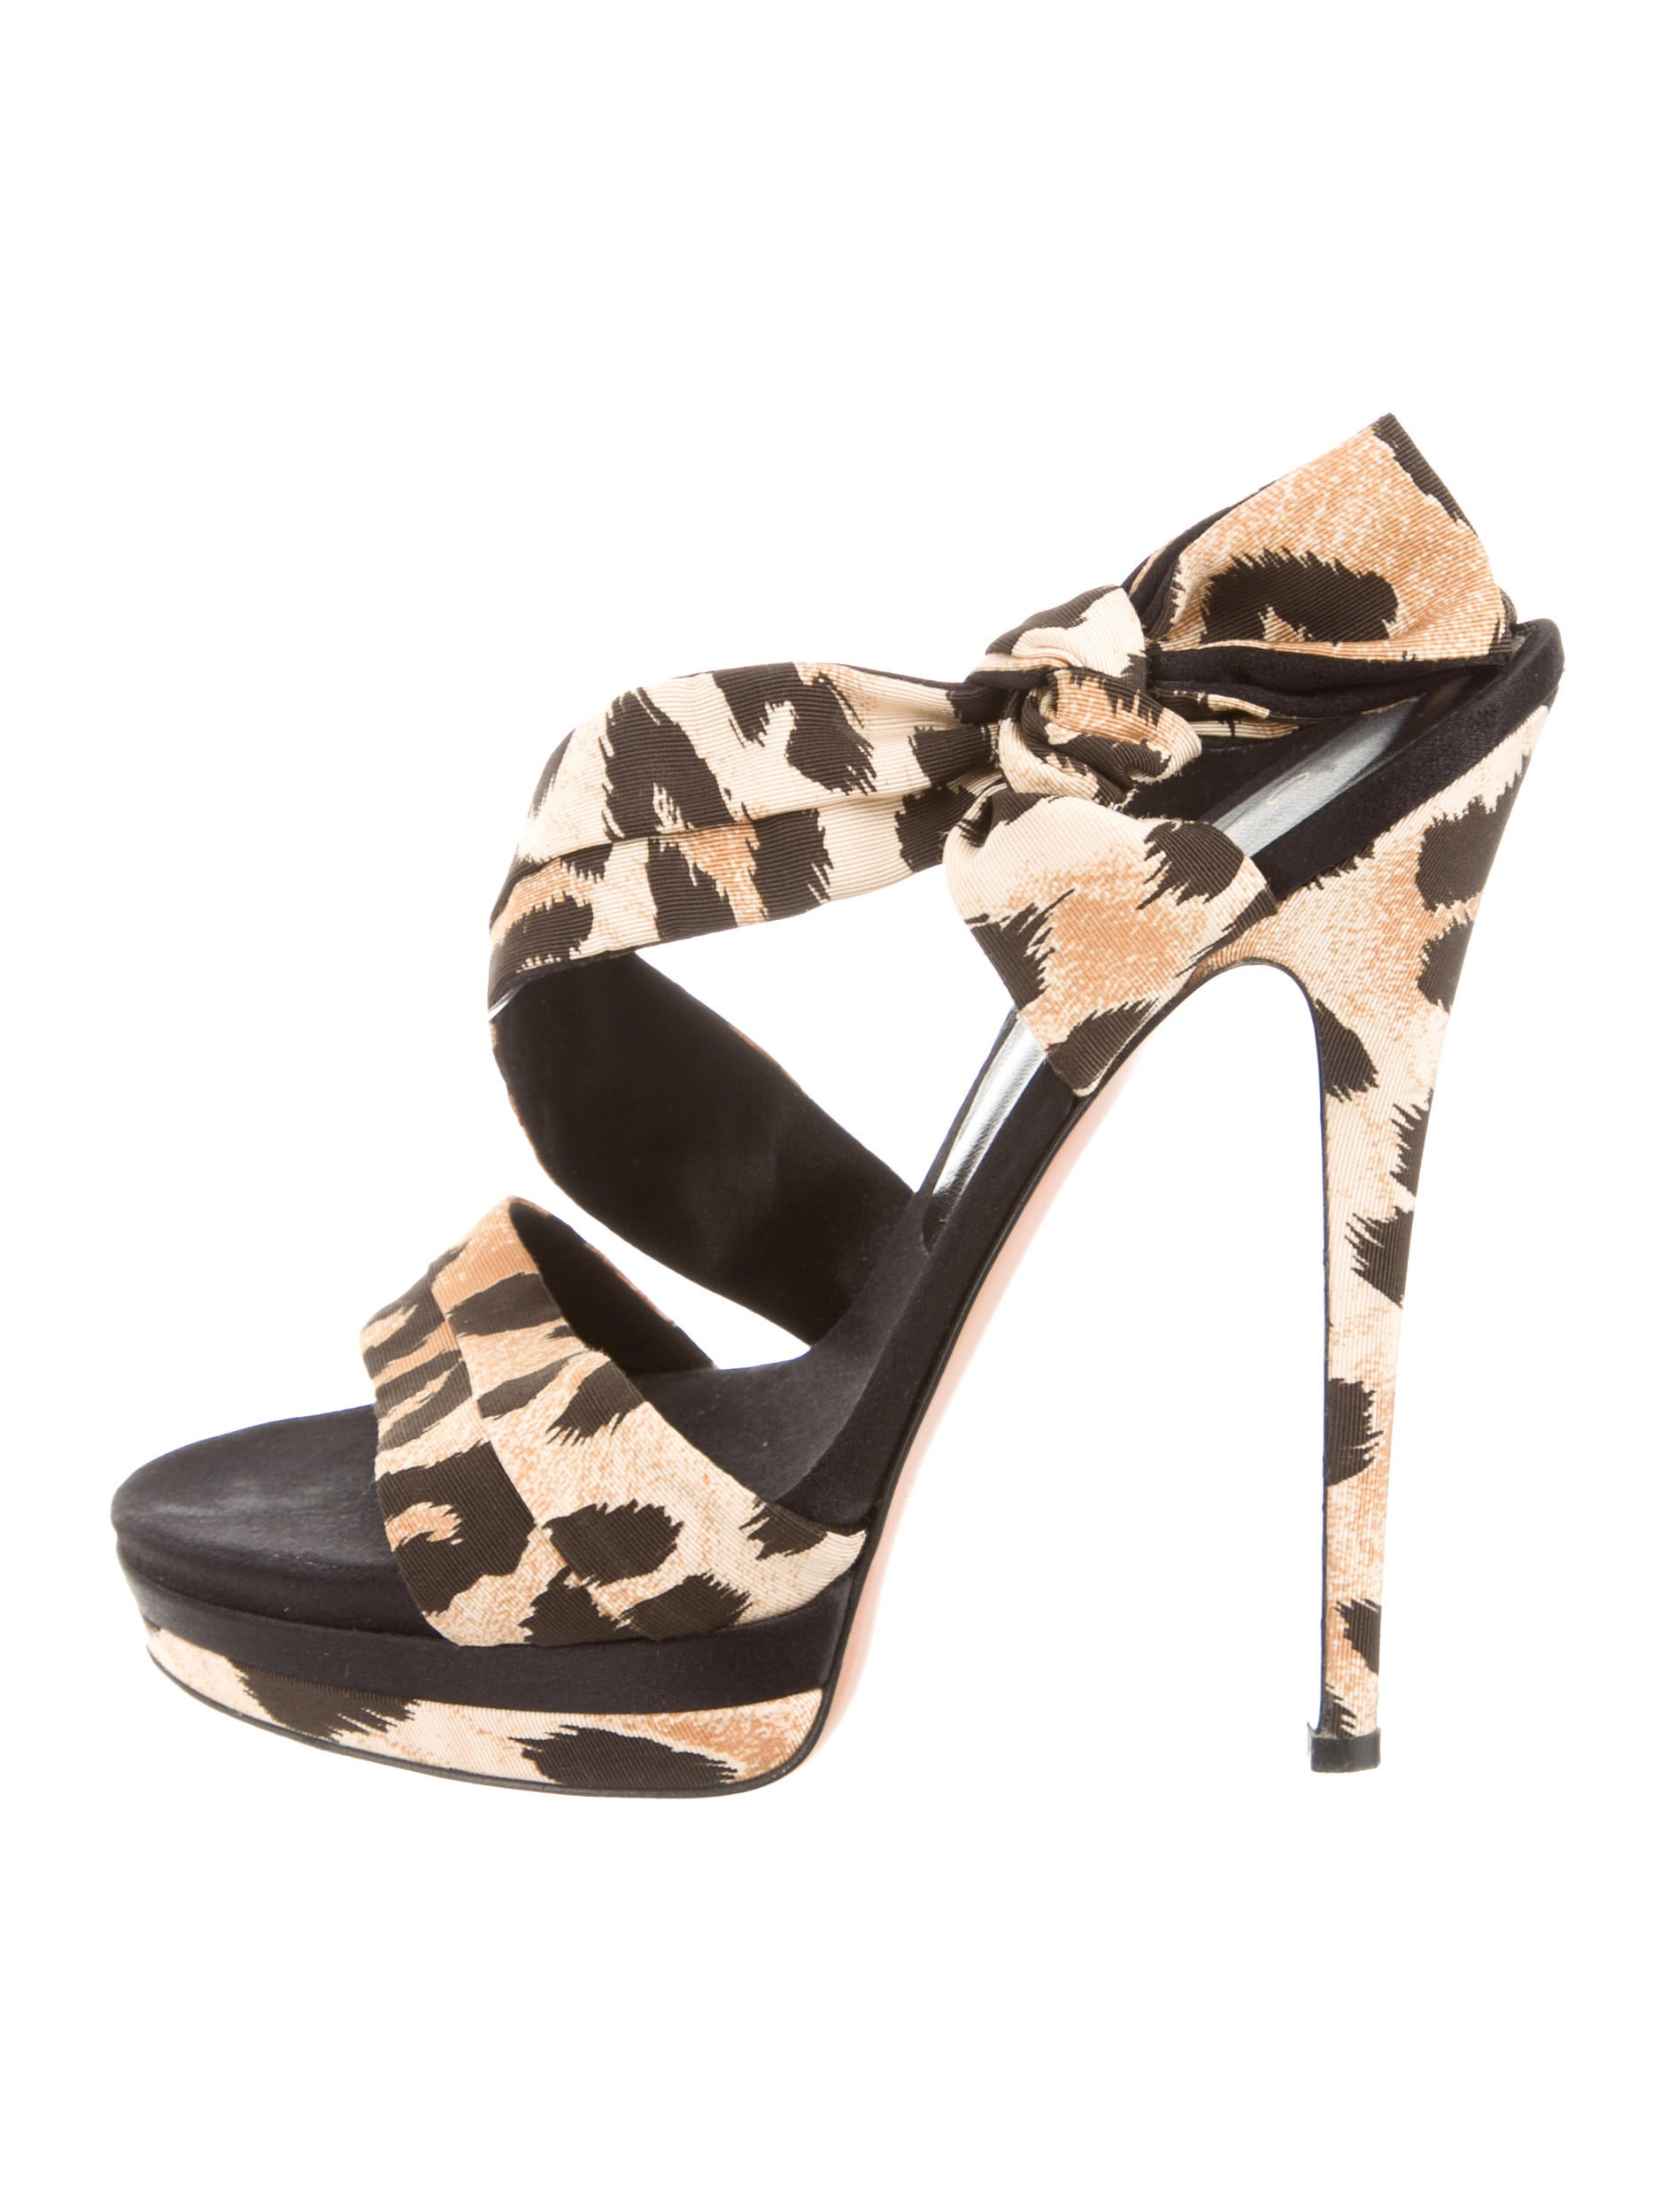 Shop the latest and fashionable women booties shoes at report2day.ml offers black ankle booties,lace up ankle booties,leopard wedge booties,wedge ankle booties,black wedge booties,flat ankle booties,black suede booties,lace up booties,stiletto booties,peep toe booties,black high heel booties,strappy booties and more at cheap price.